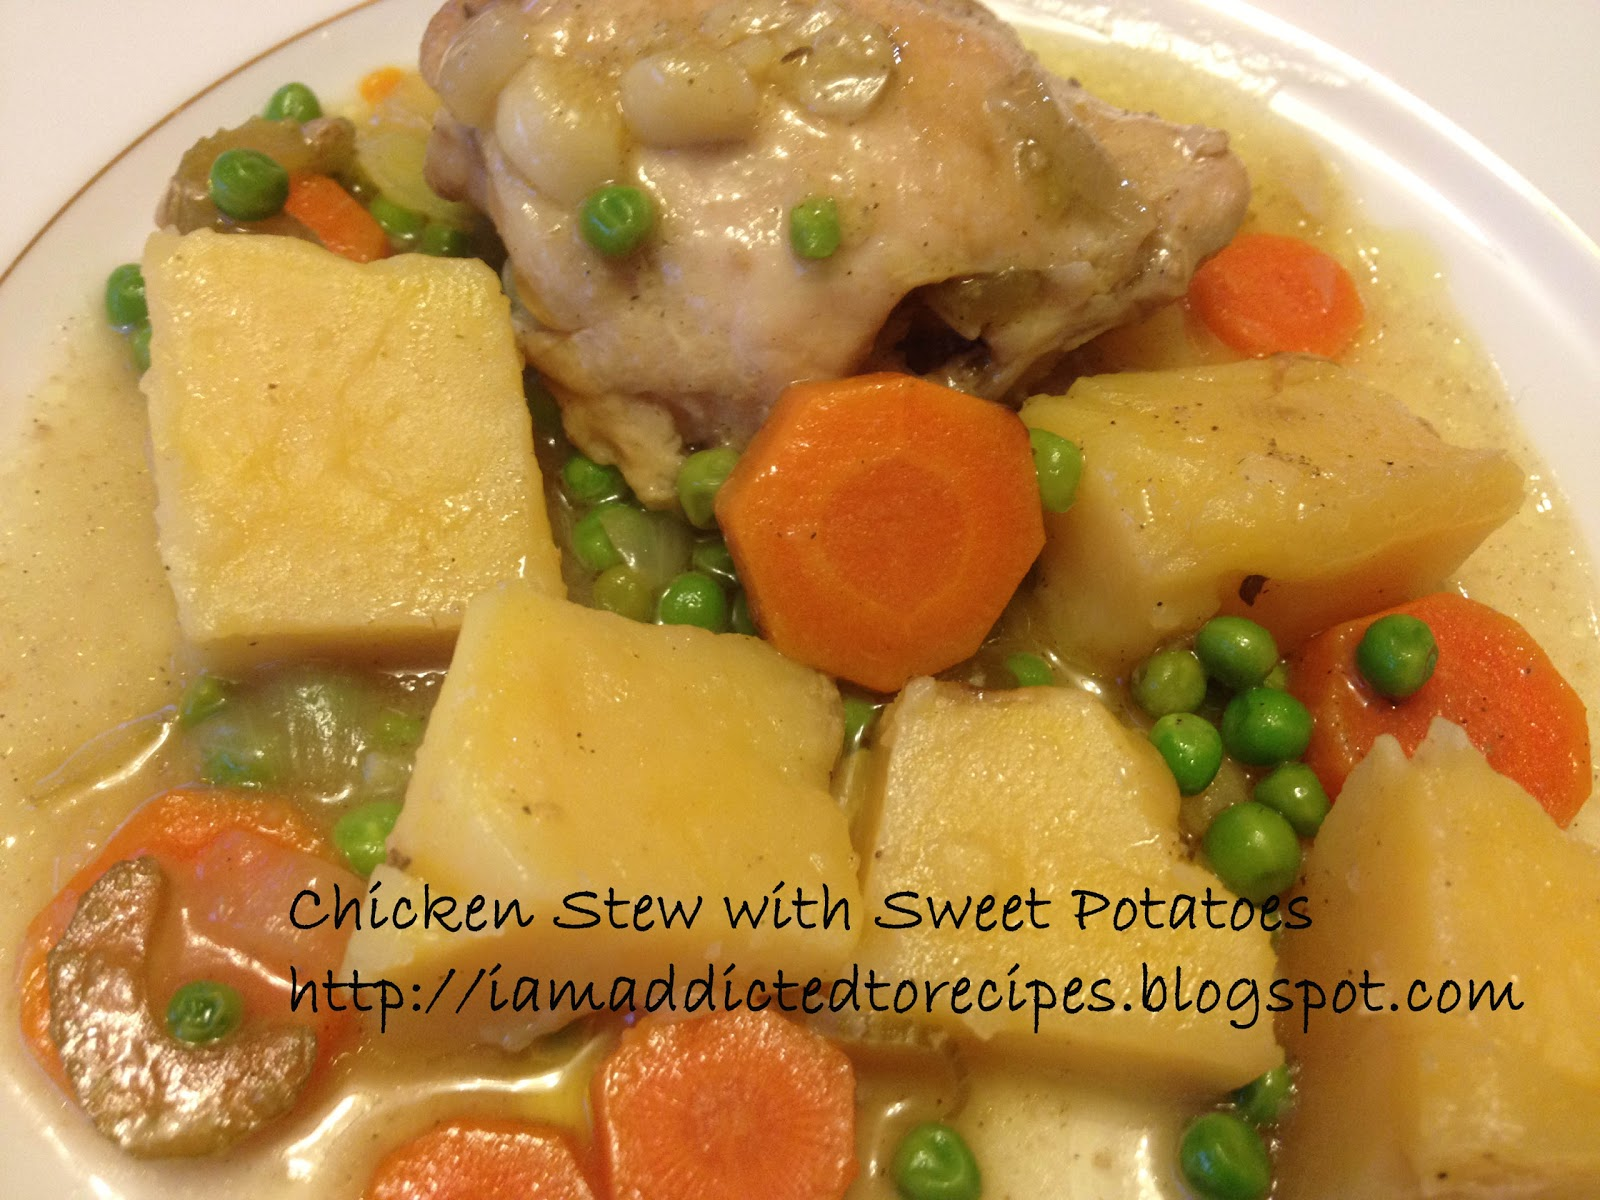 ... to Recipes: Chicken Stew with Sweet Potatoes - Slow Cooker Thursday